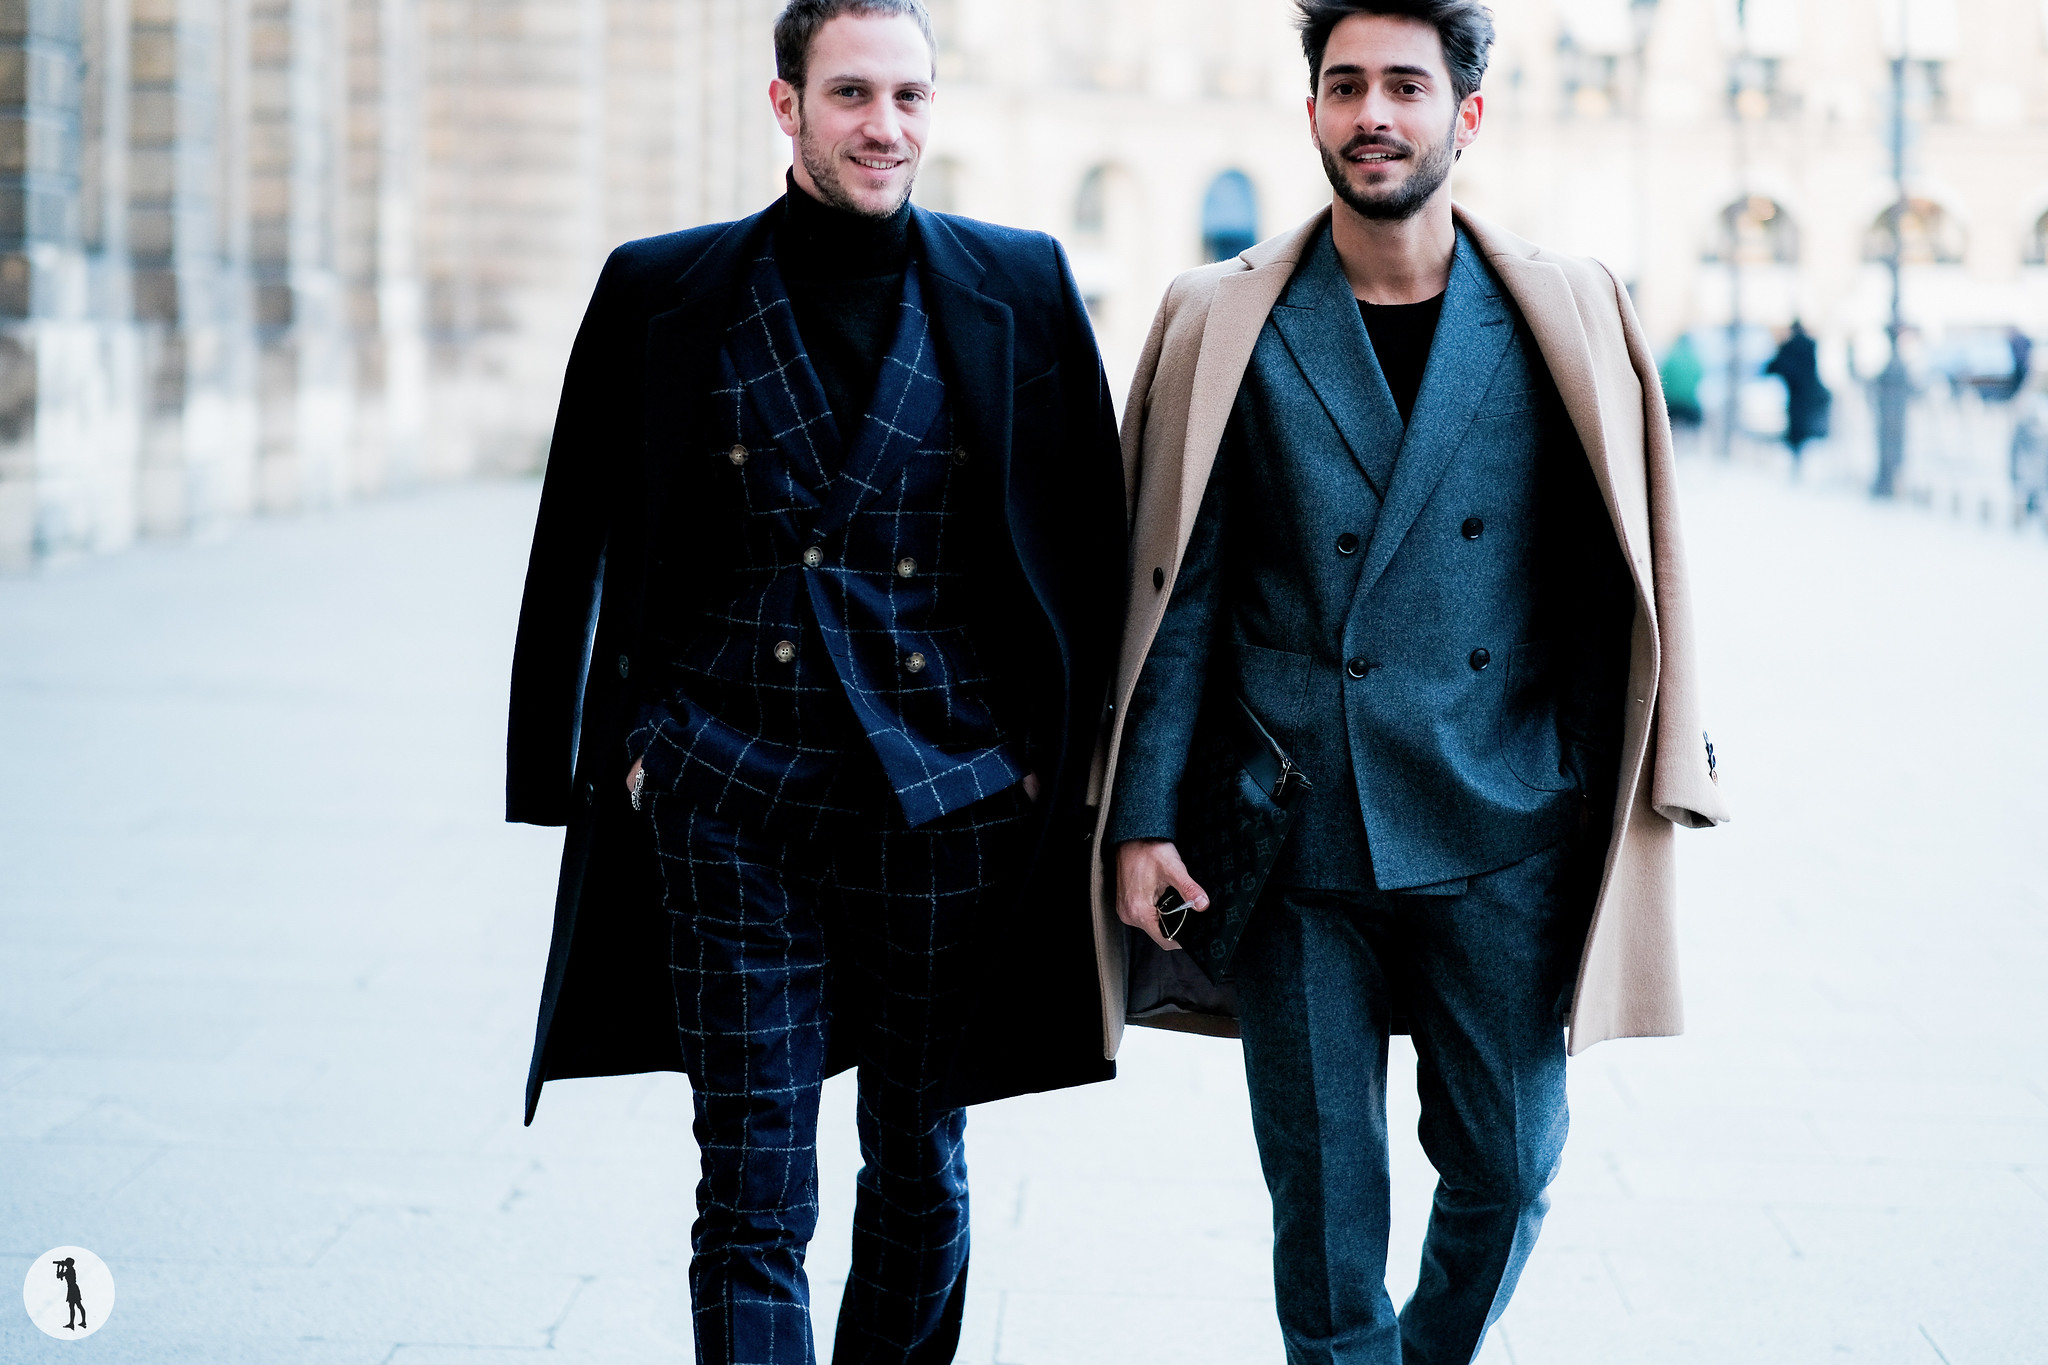 Romain Costa and Raphael Spezzotto-Simacourbe - Paris Fashion Week Menswear FW17-18 (3)